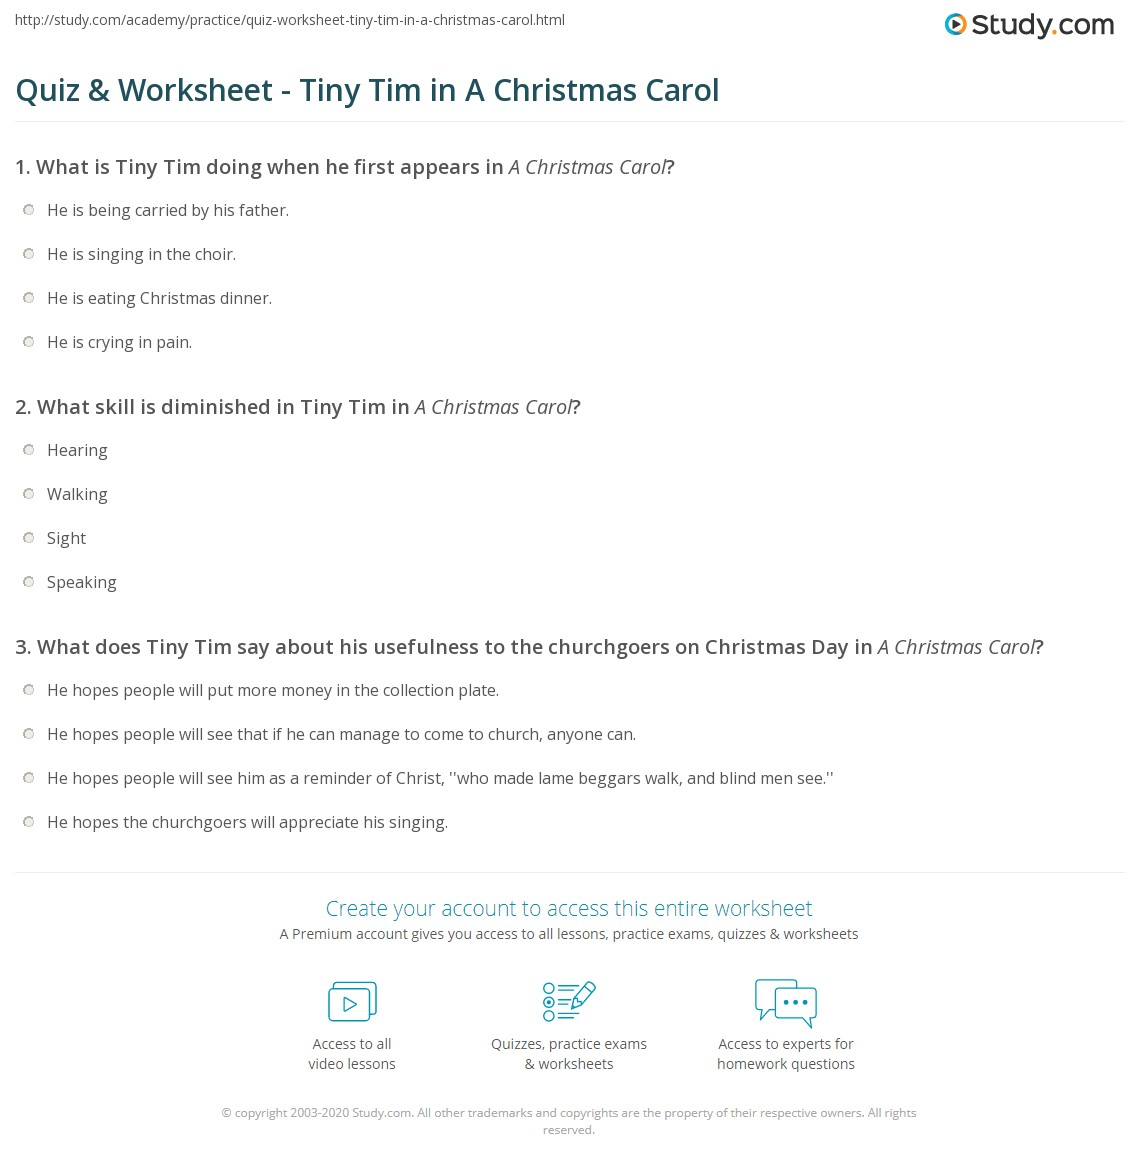 Tiny Tim A Christmas Carol: Quiz & Worksheet - Tiny Tim In A Christmas Carol